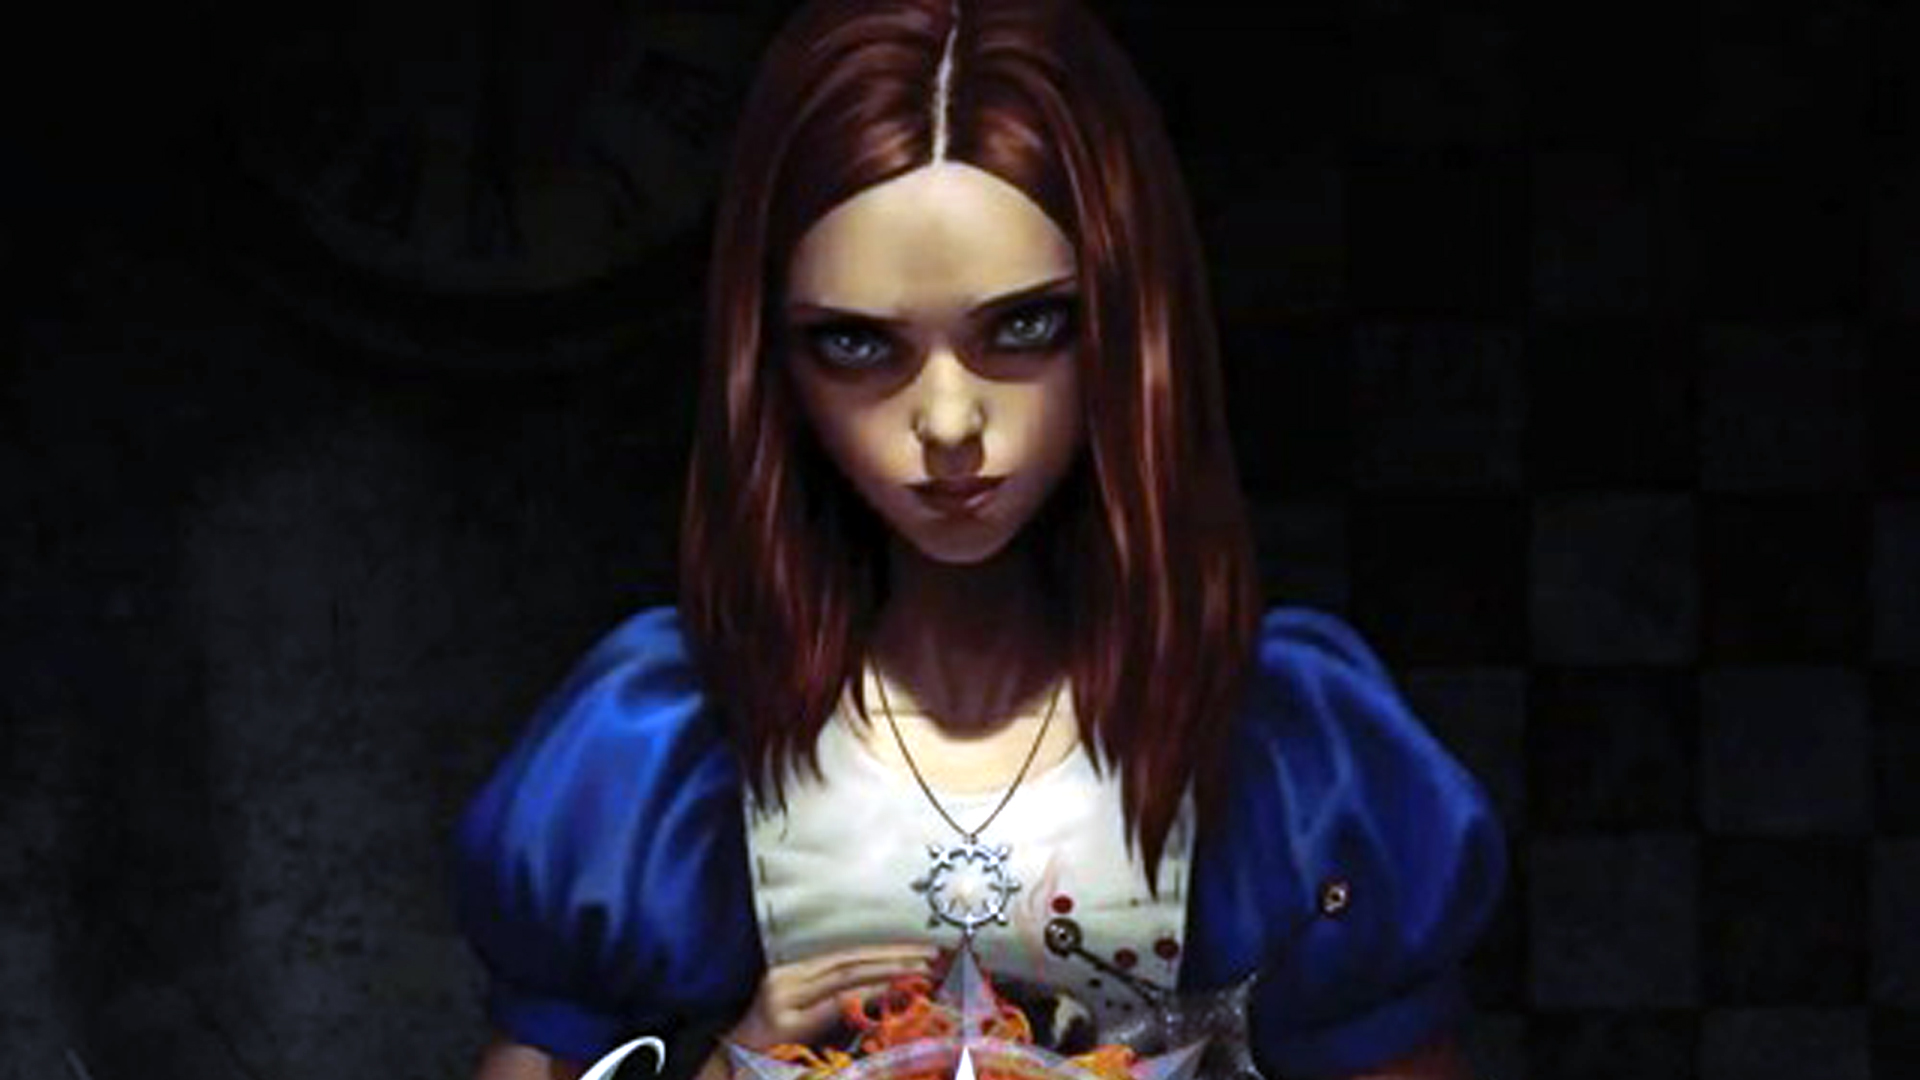 Alice: Asylum's 'narrative outline' might be the closest fans get to American McGee's Alice 3